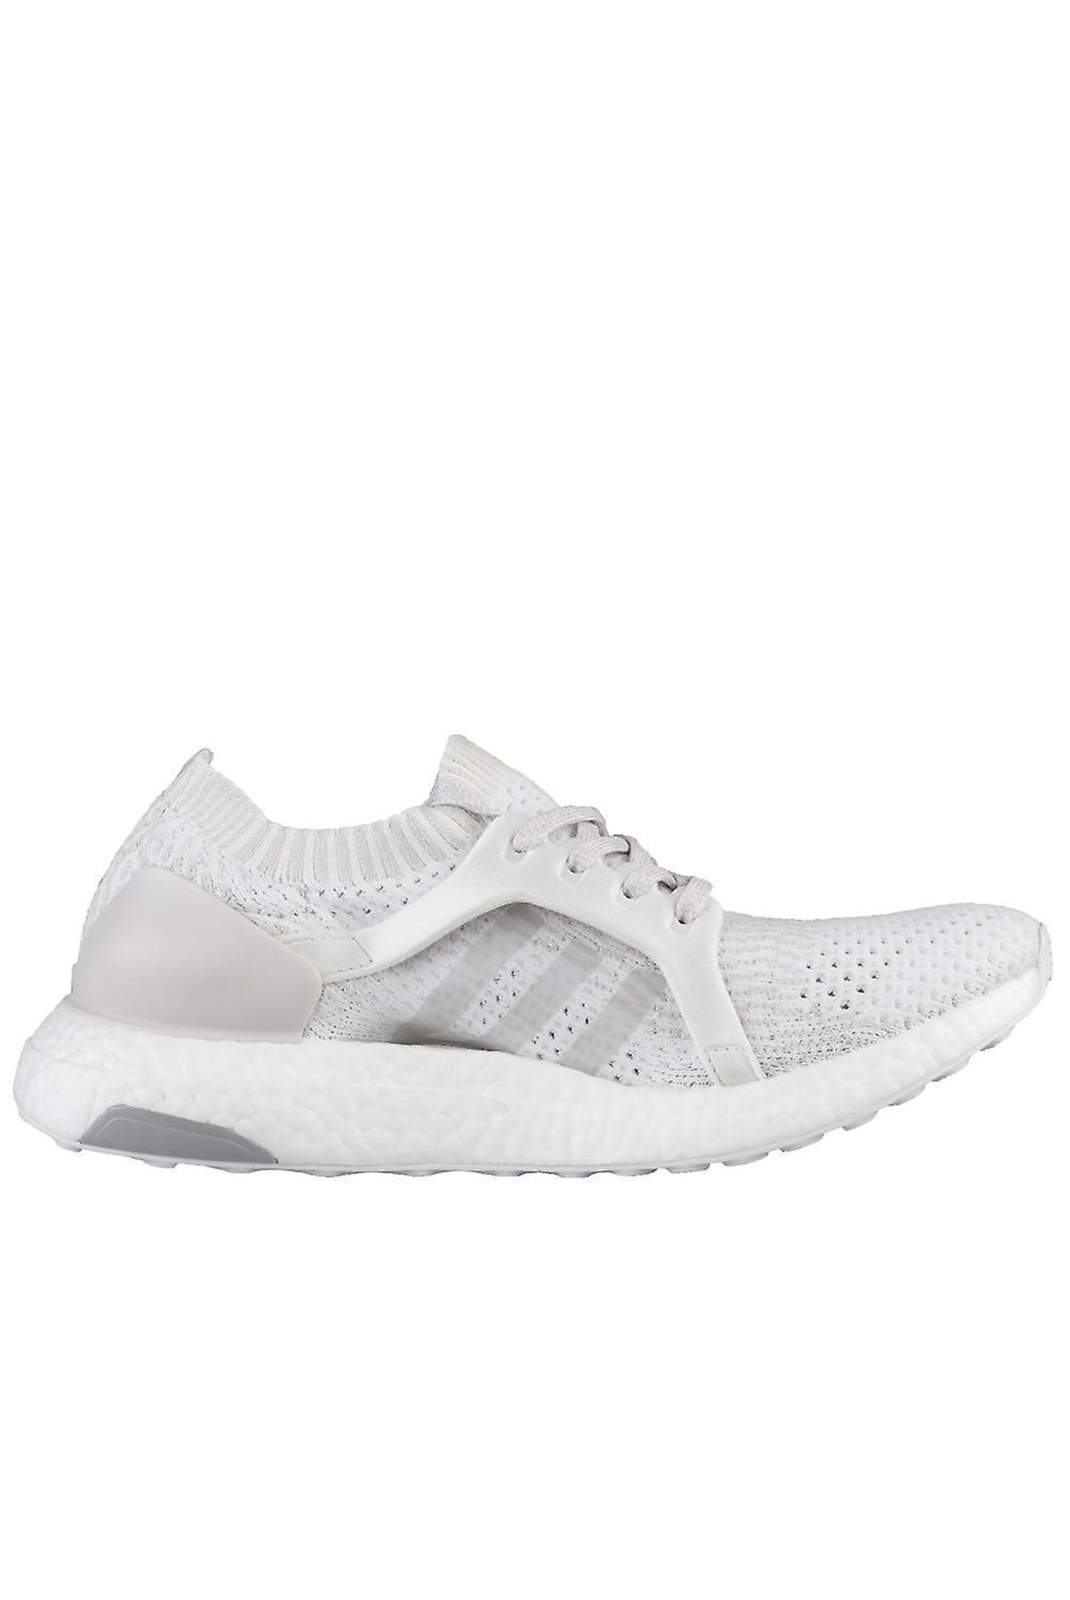 Baskets / Sneakers  Adidas BB0879 ULTRABOOST X WHITE